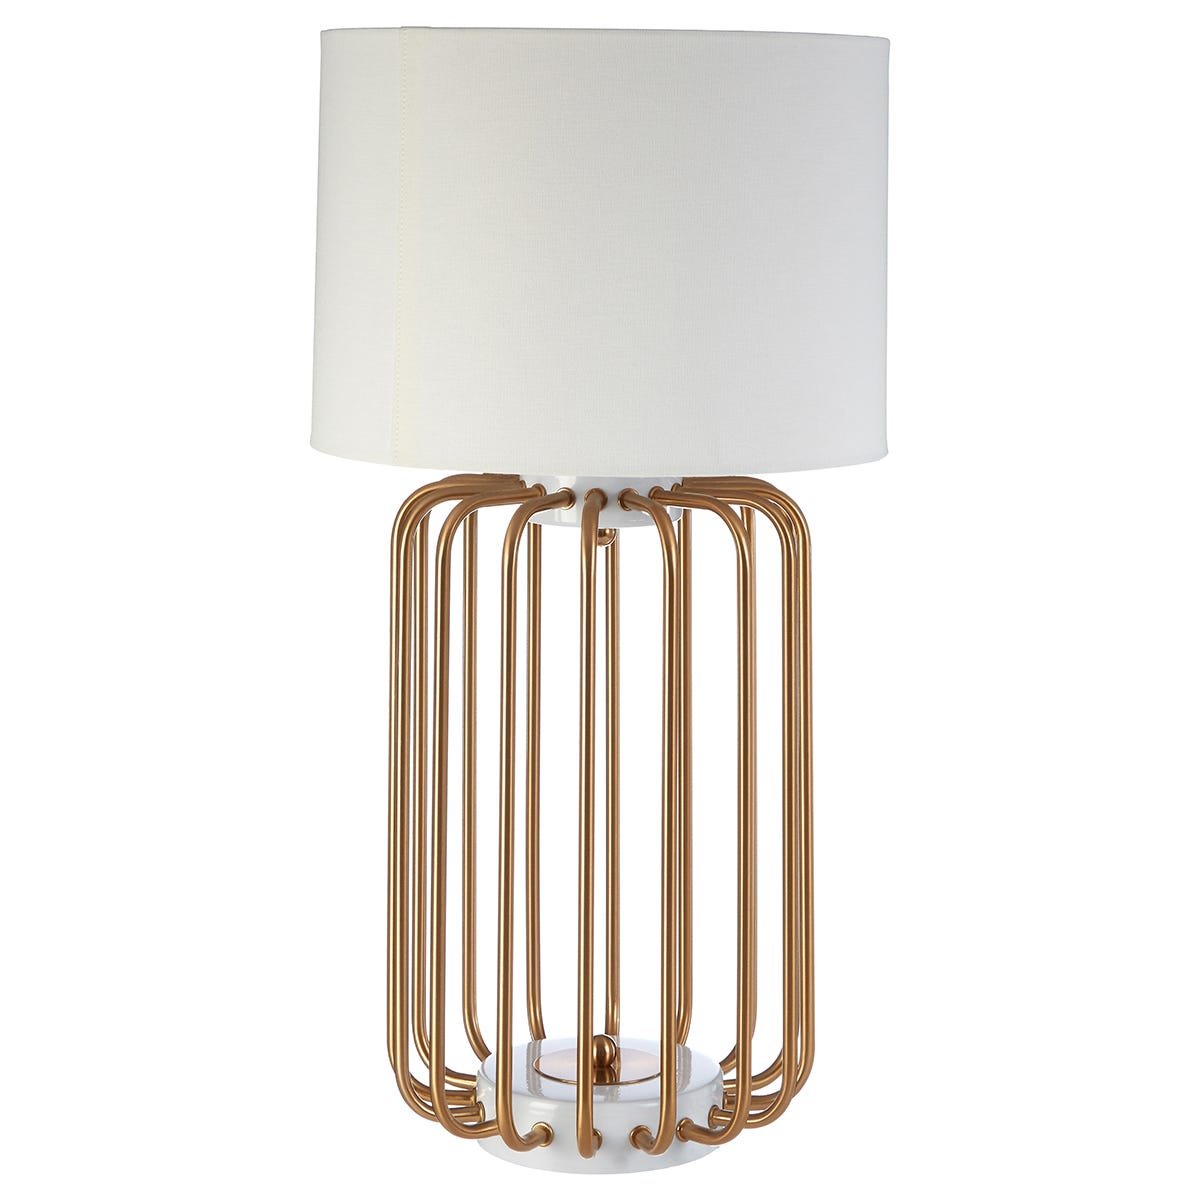 Premier Housewares Zora Table Lamp in Gold Finish with White Linen Shade